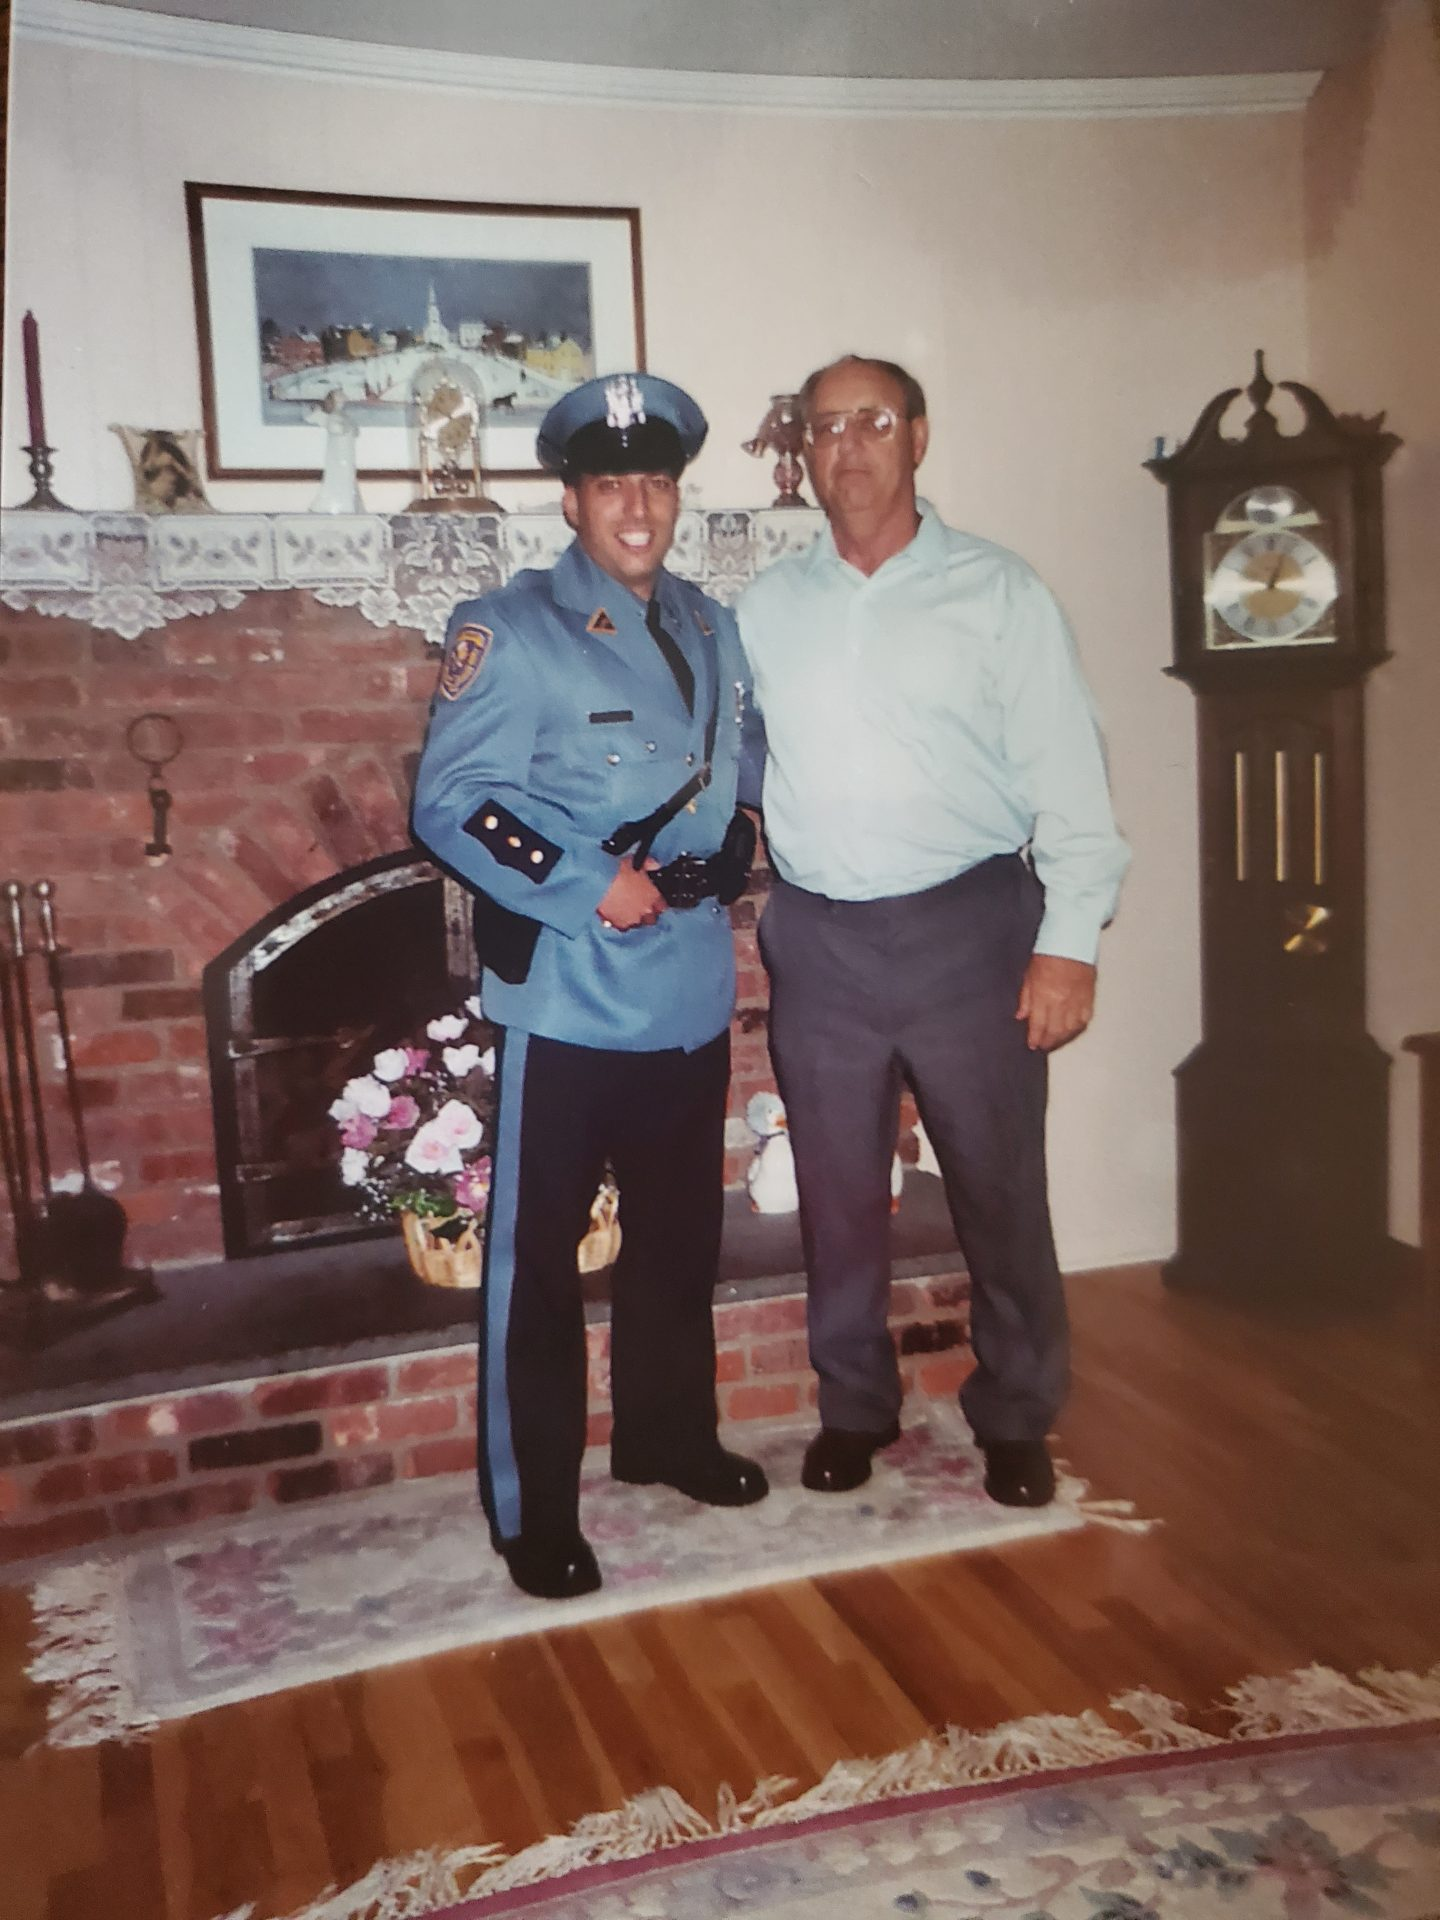 Me and my Godfather after I graduated from the police academy.